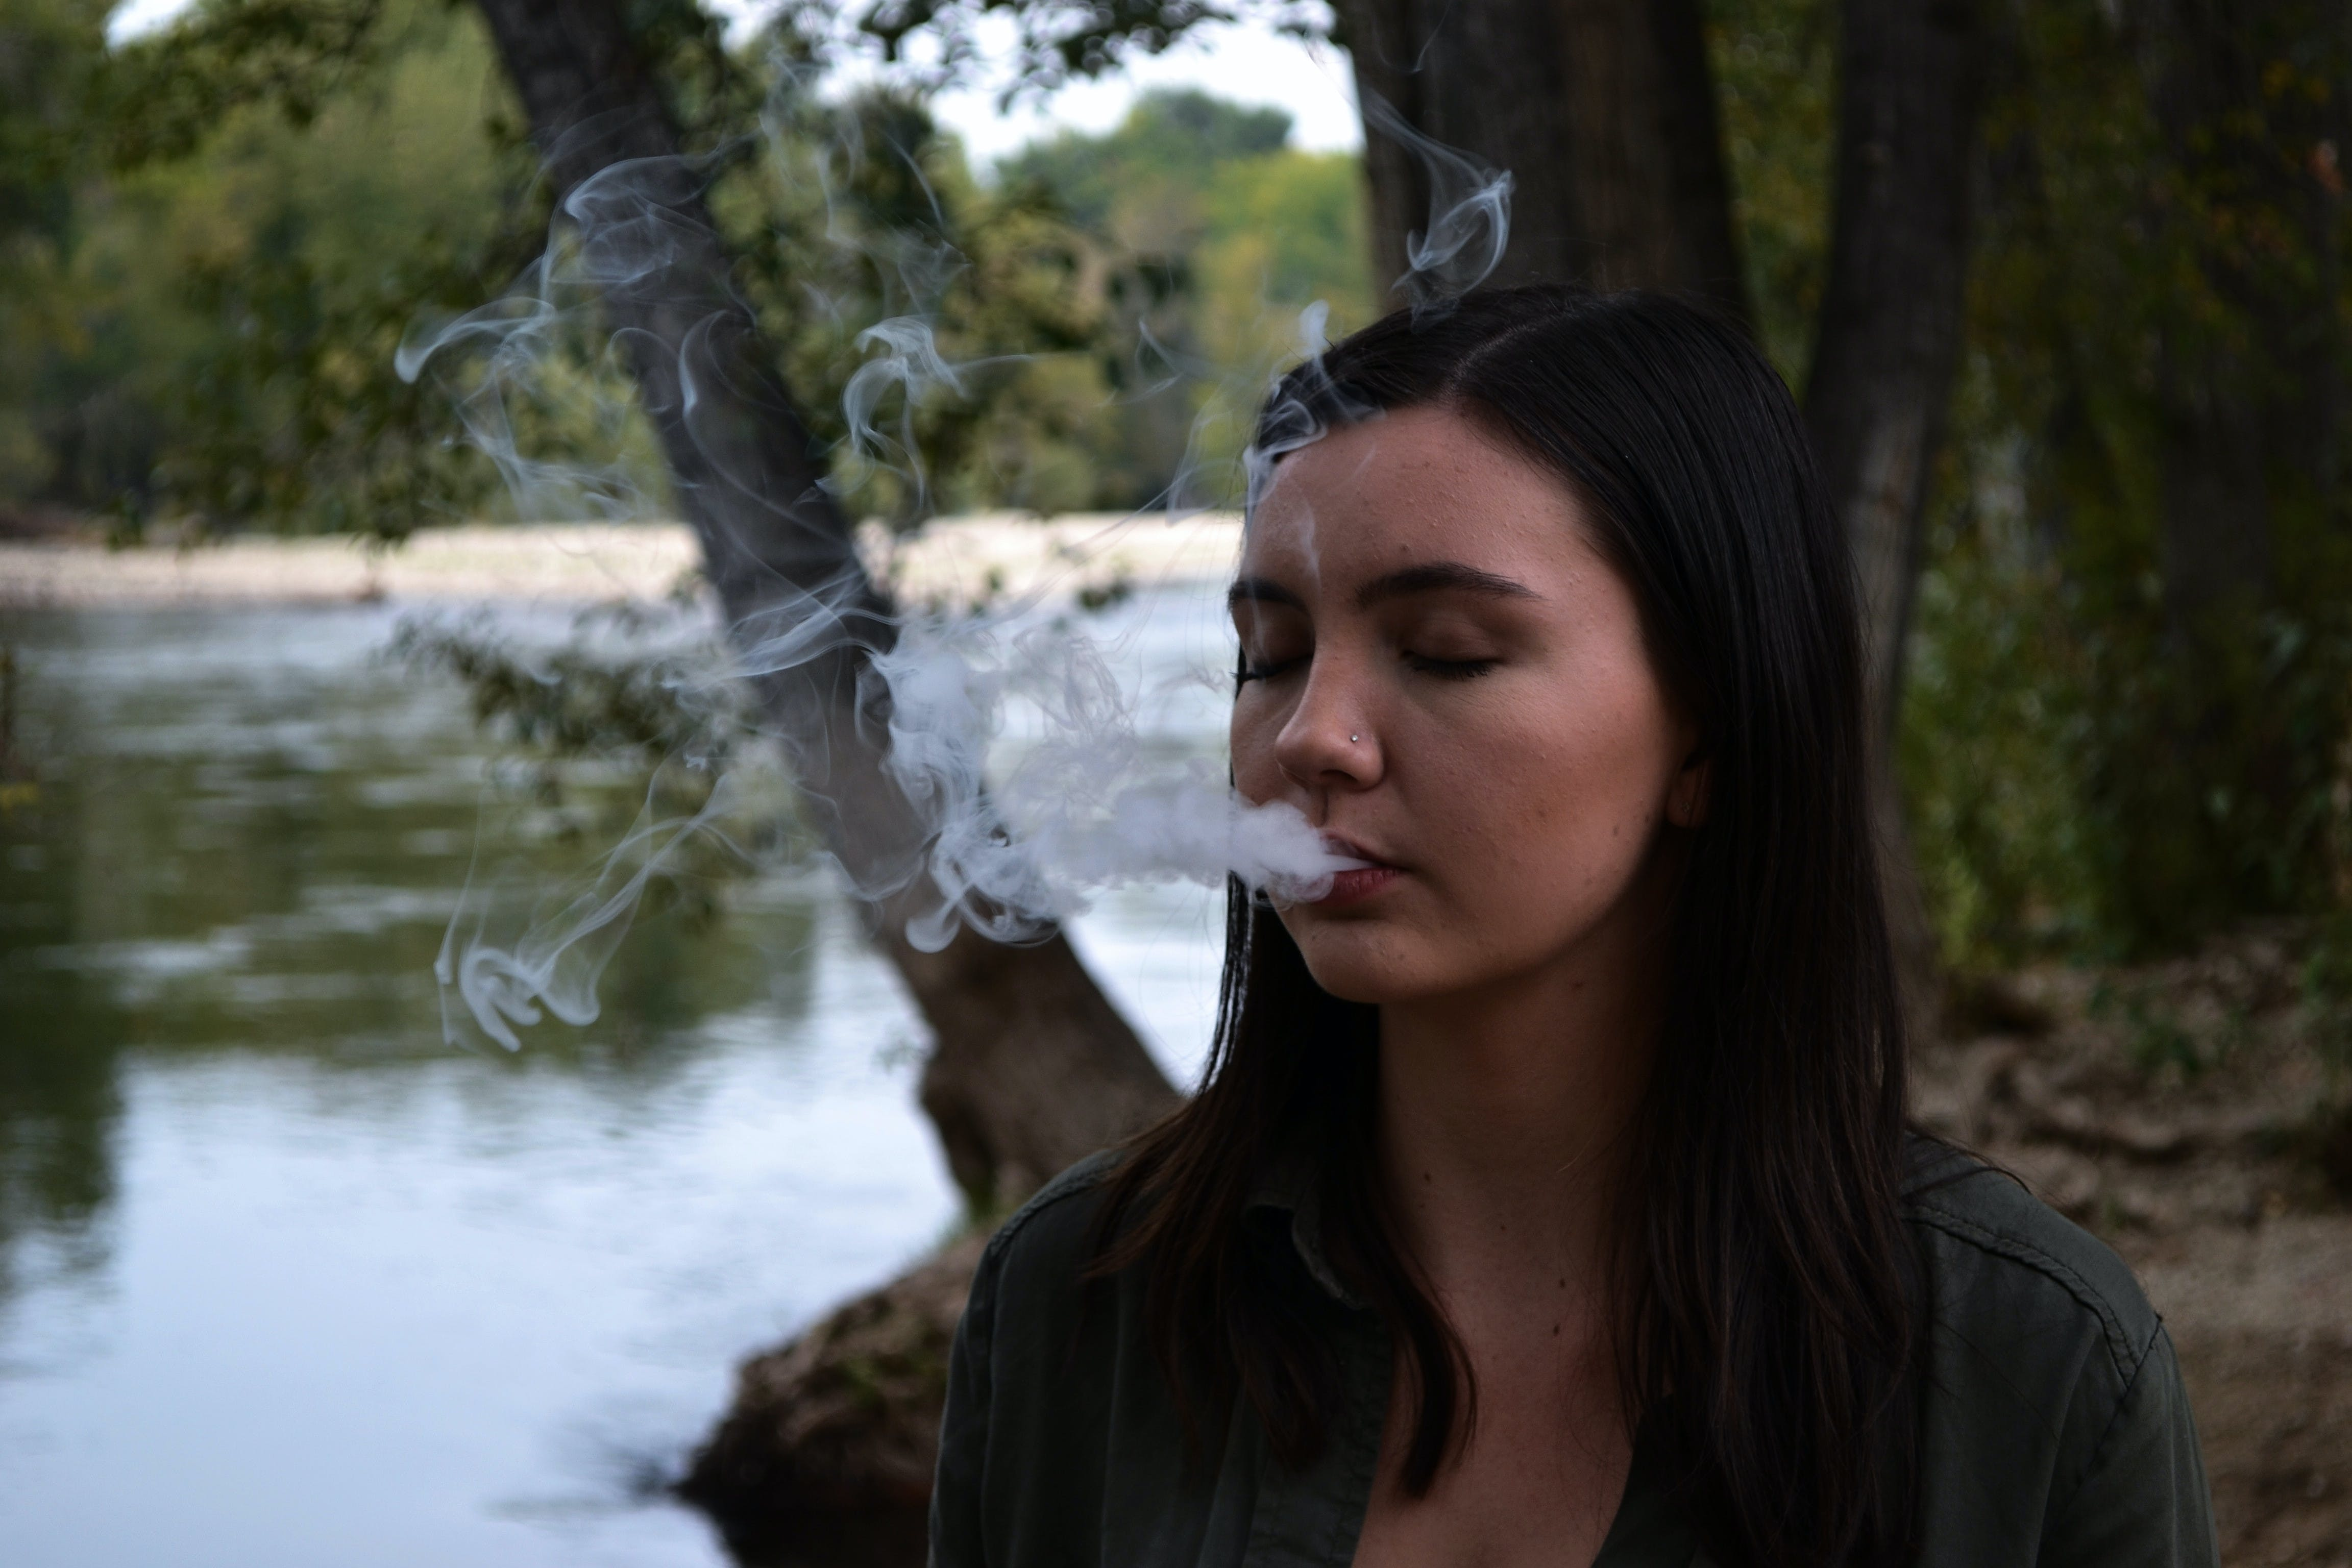 Woman With Smoke Coming Out from Mouth